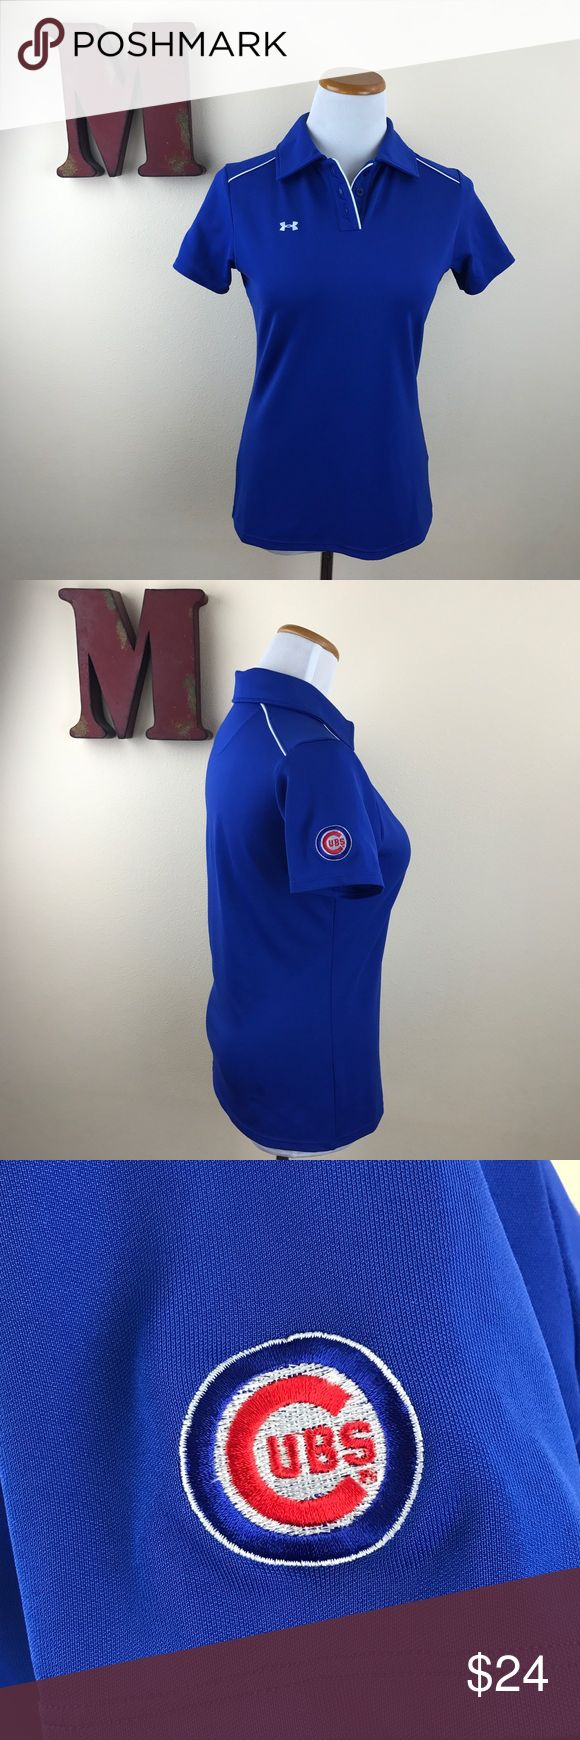 UNDER ARMOUR Chicago Cubs Polo World Series Champs, Chicago Cubs blue with white piping and Cubbies logo on sleeve. 95% polyester; 5% elastane for a flattering fit. Excellent preowned condition. Only flaw is name written on tag as pictured. Under Armour Tops